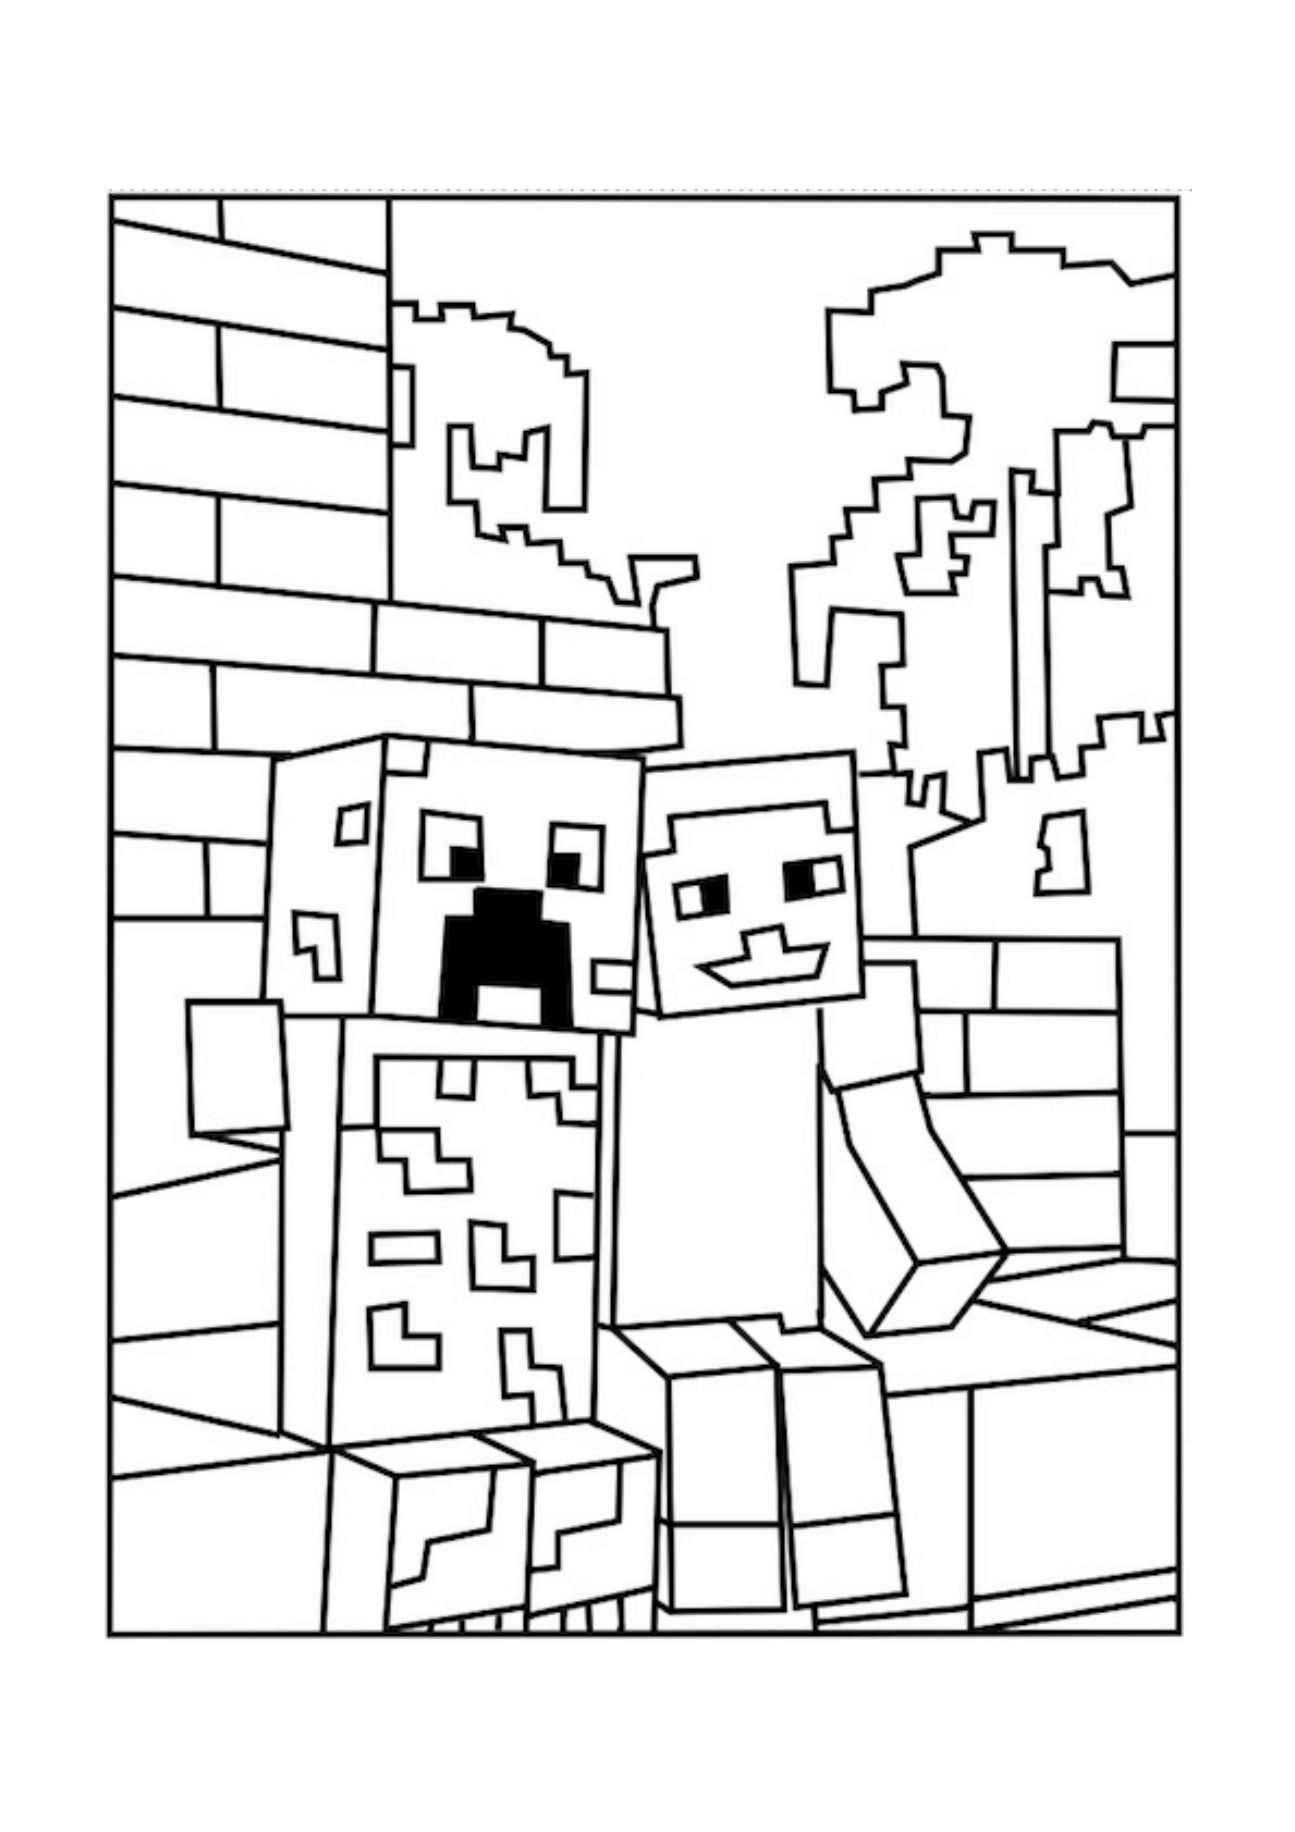 A Minecraft Creeper And Pal Coloring Picture Imagenes De